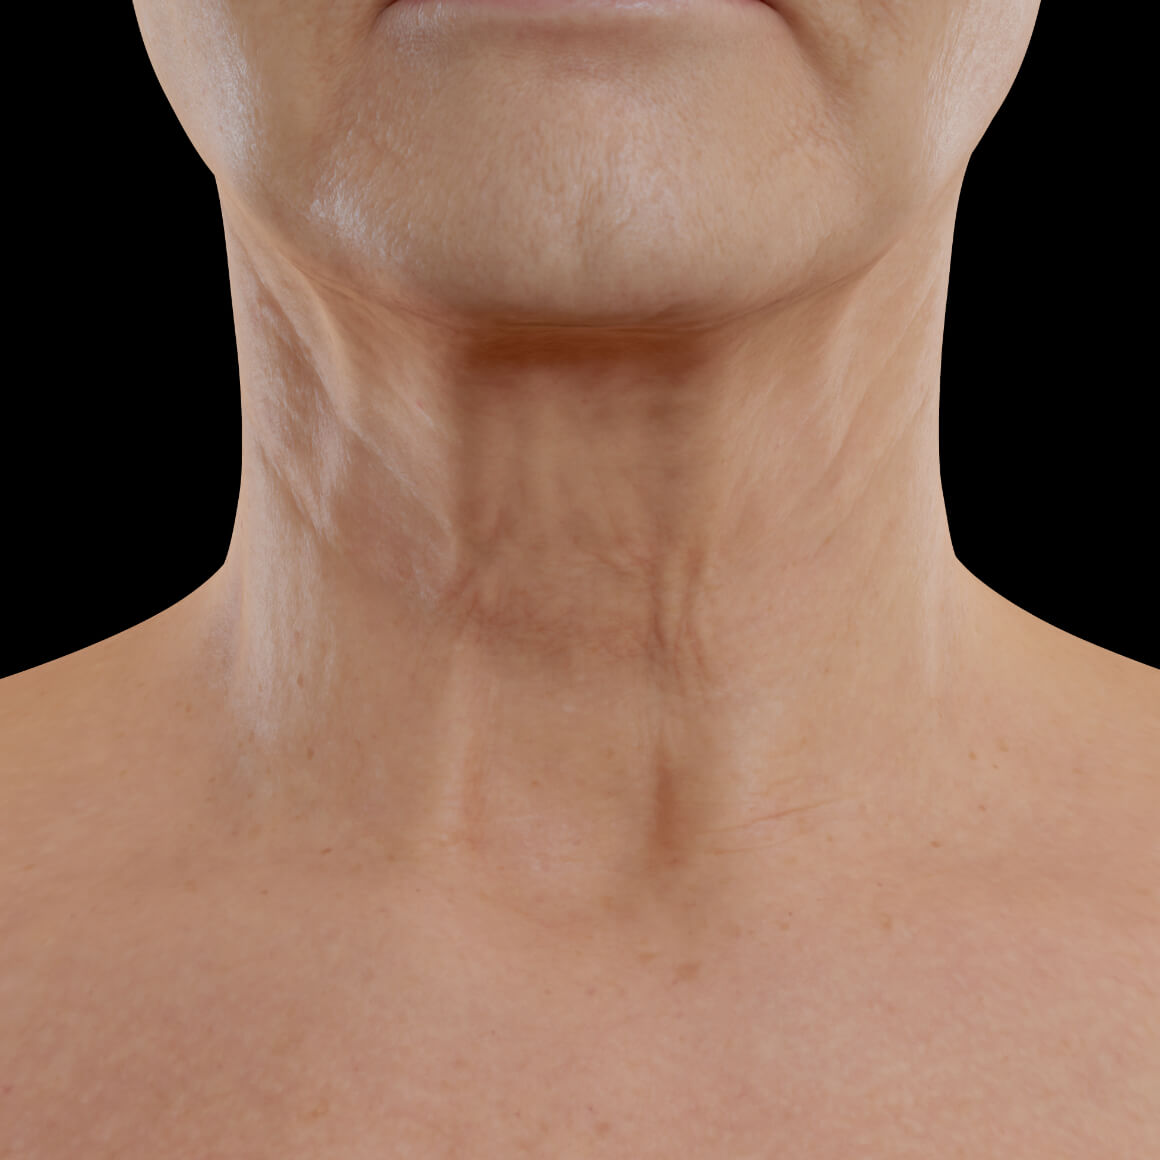 Female patient from Clinique Chloé facing front after neuromodulator injections in the neck area for skin firmness